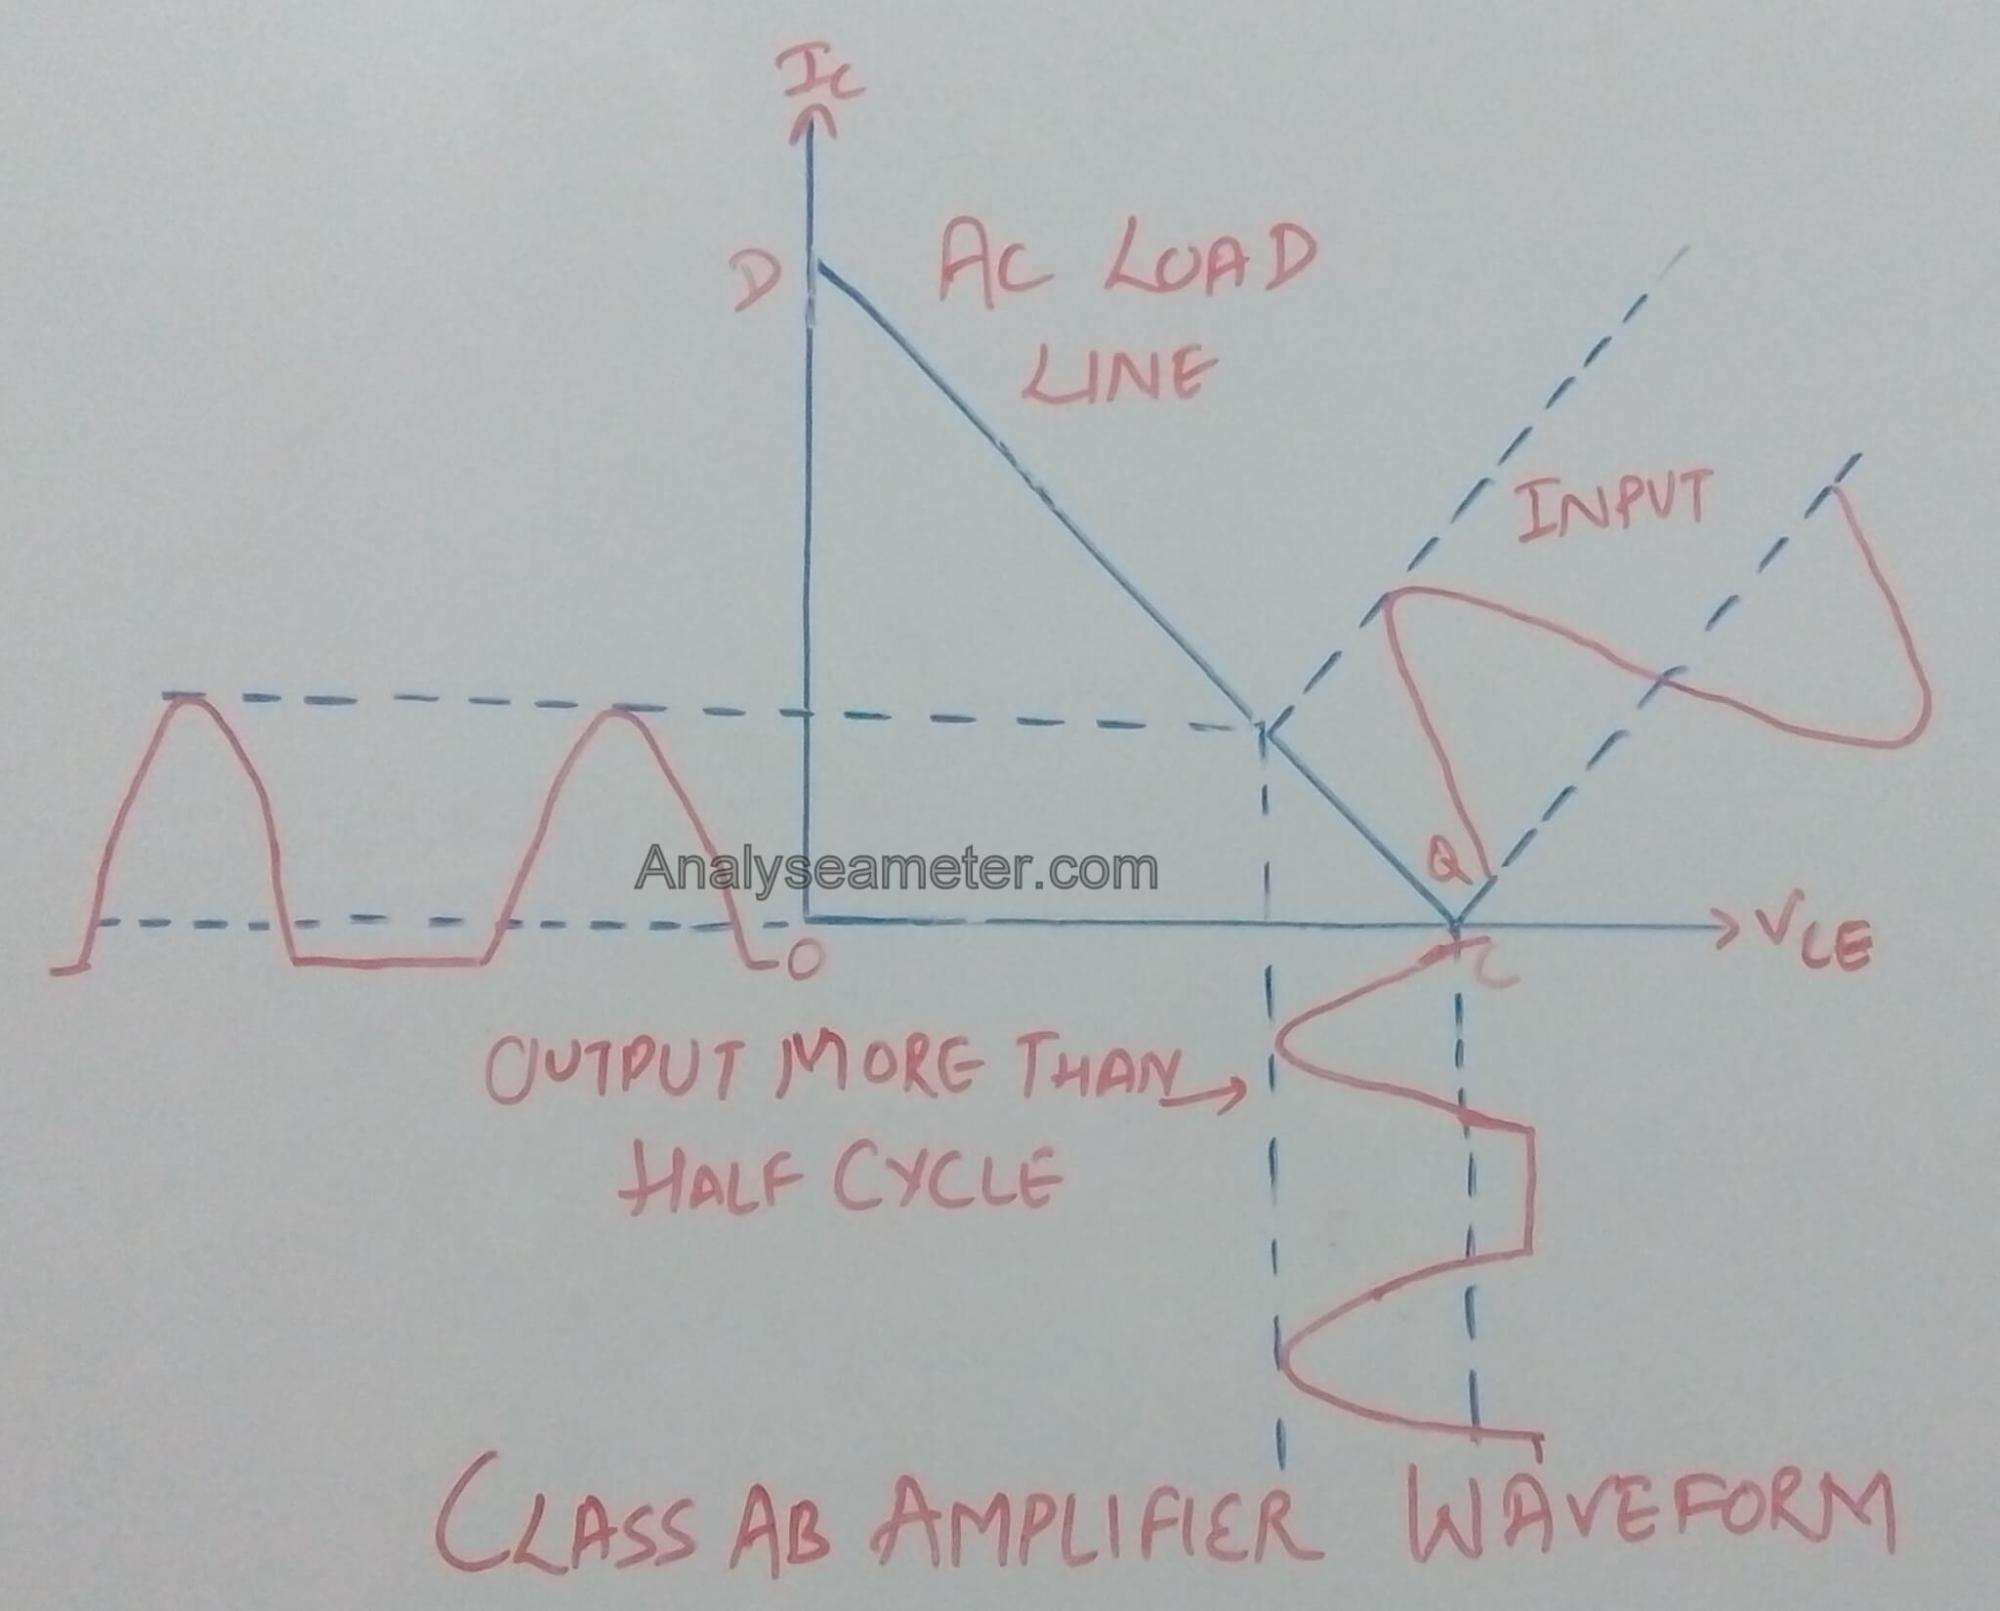 hight resolution of for class ab operation of the amplifier the biasing circuit is so adjusted that the operating point lies near the cut off voltage